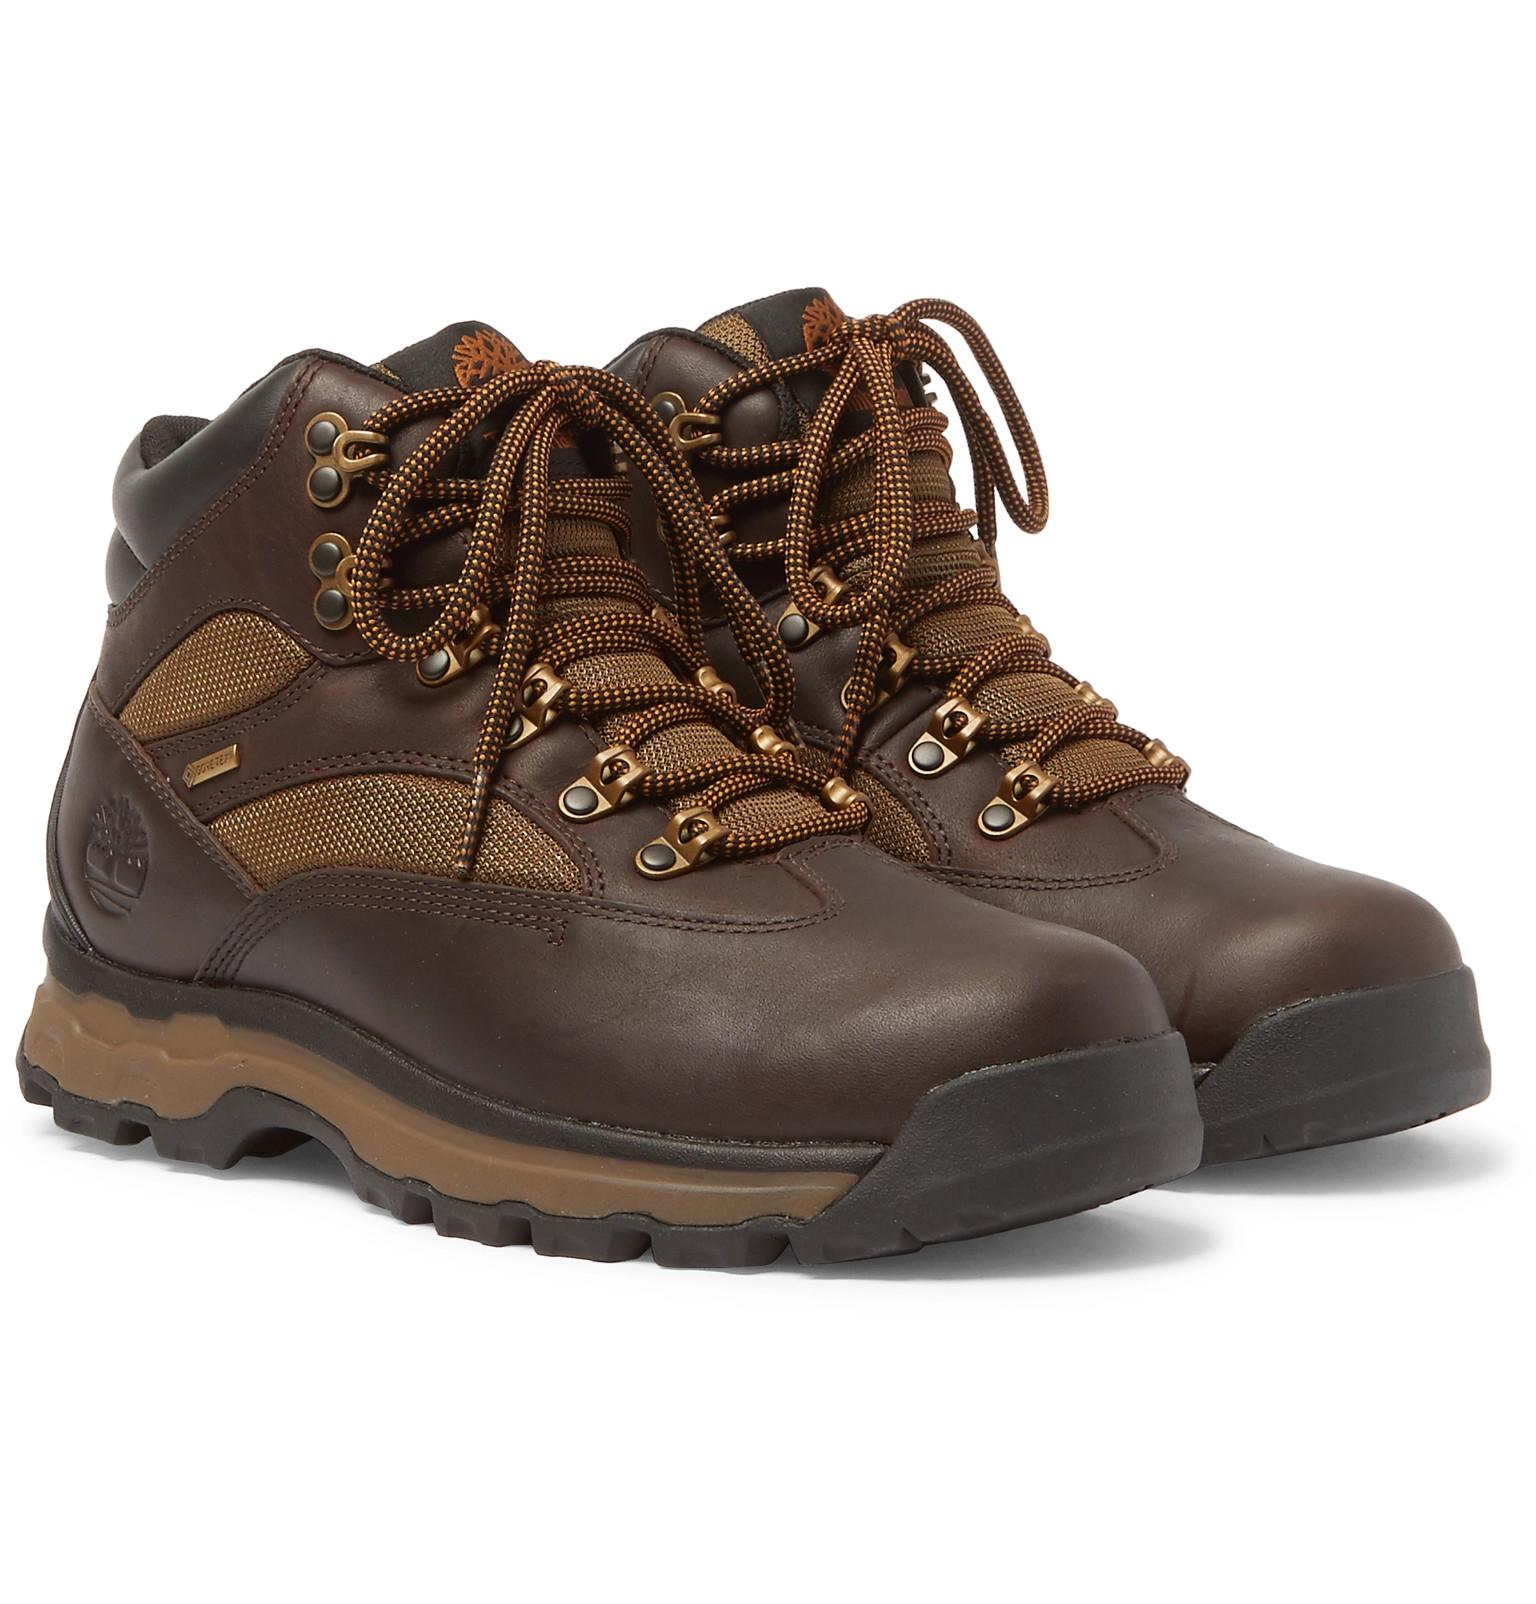 29091e2f2ef Timberland Chocorua Trail 2 Leather And Gore-tex Hiking Boots in ...